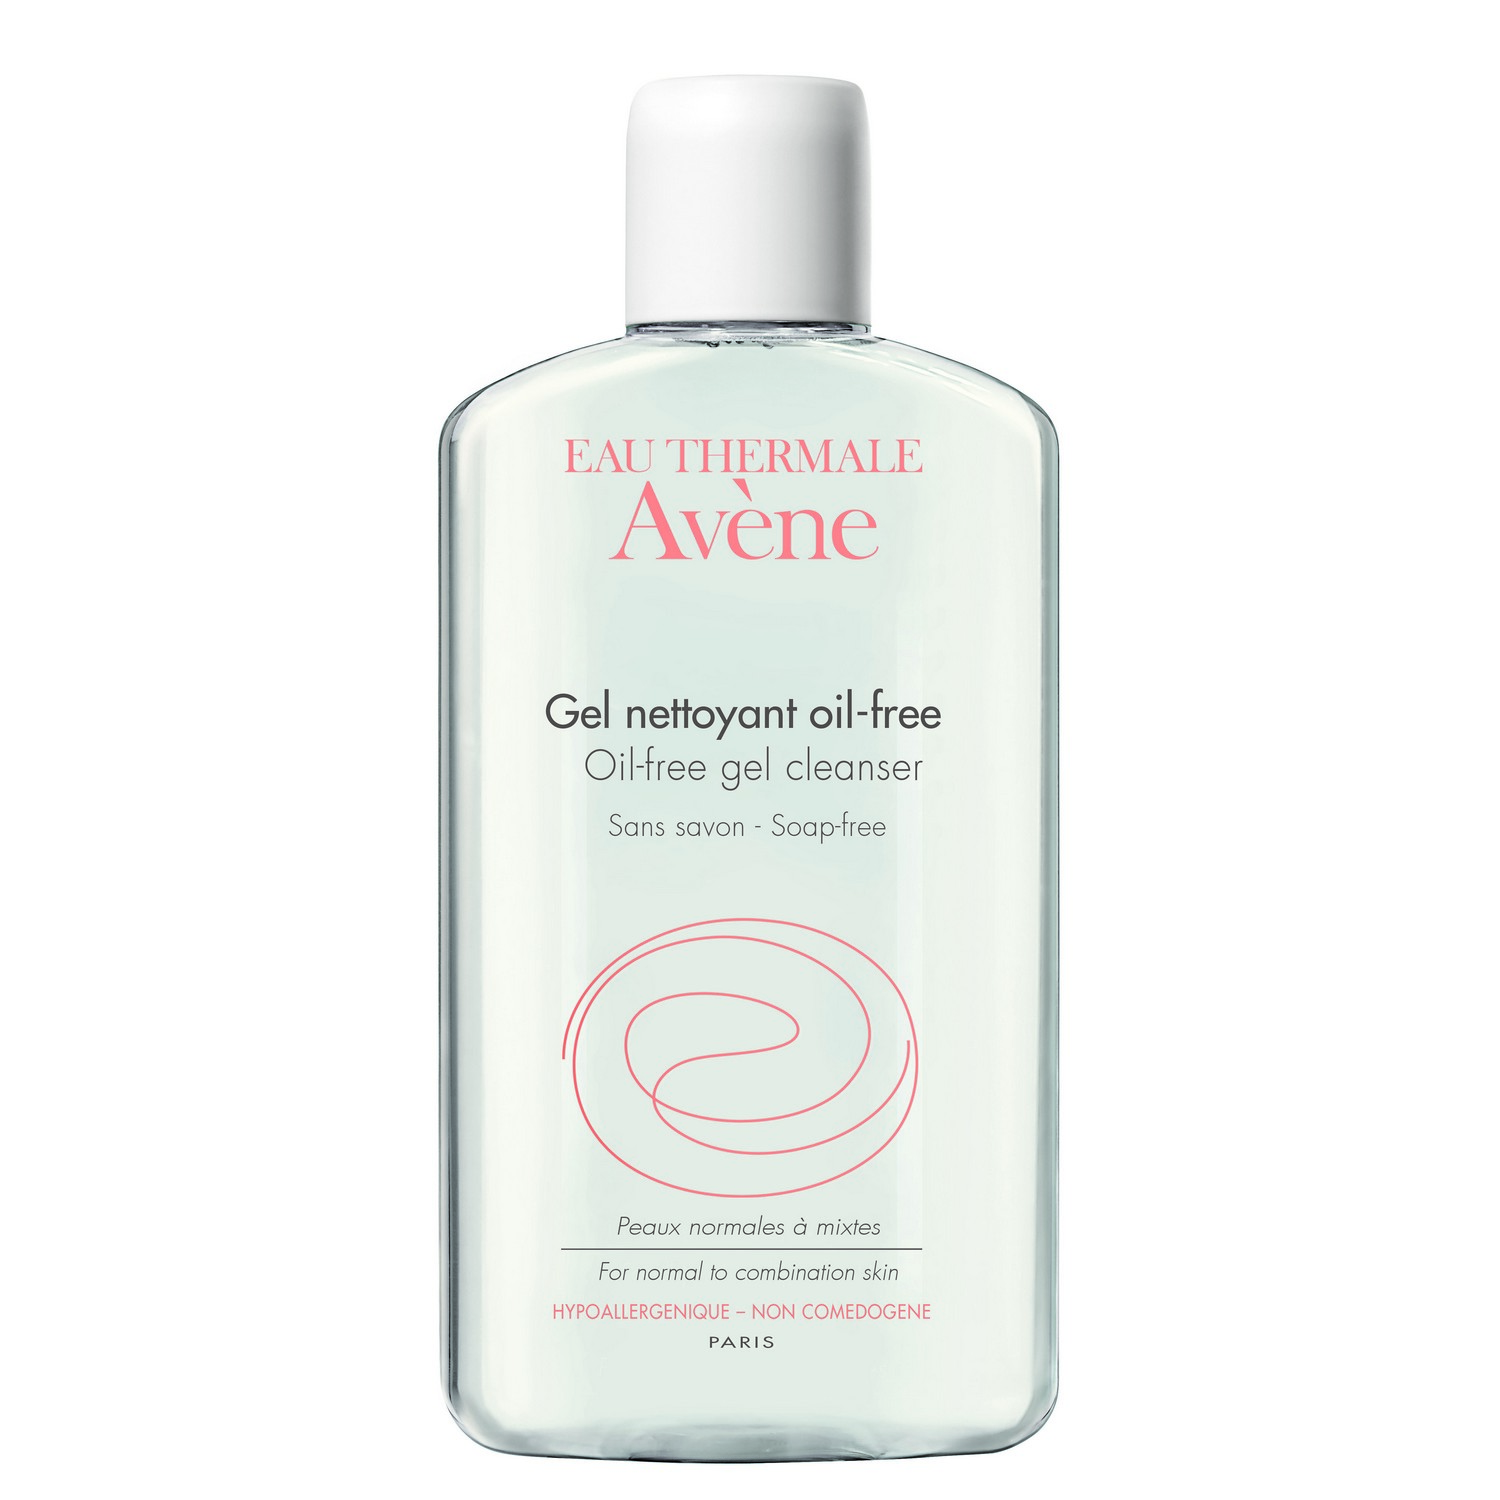 Buy Avene Oil-free gel cleanser (200 ml / 6.76 fl oz)